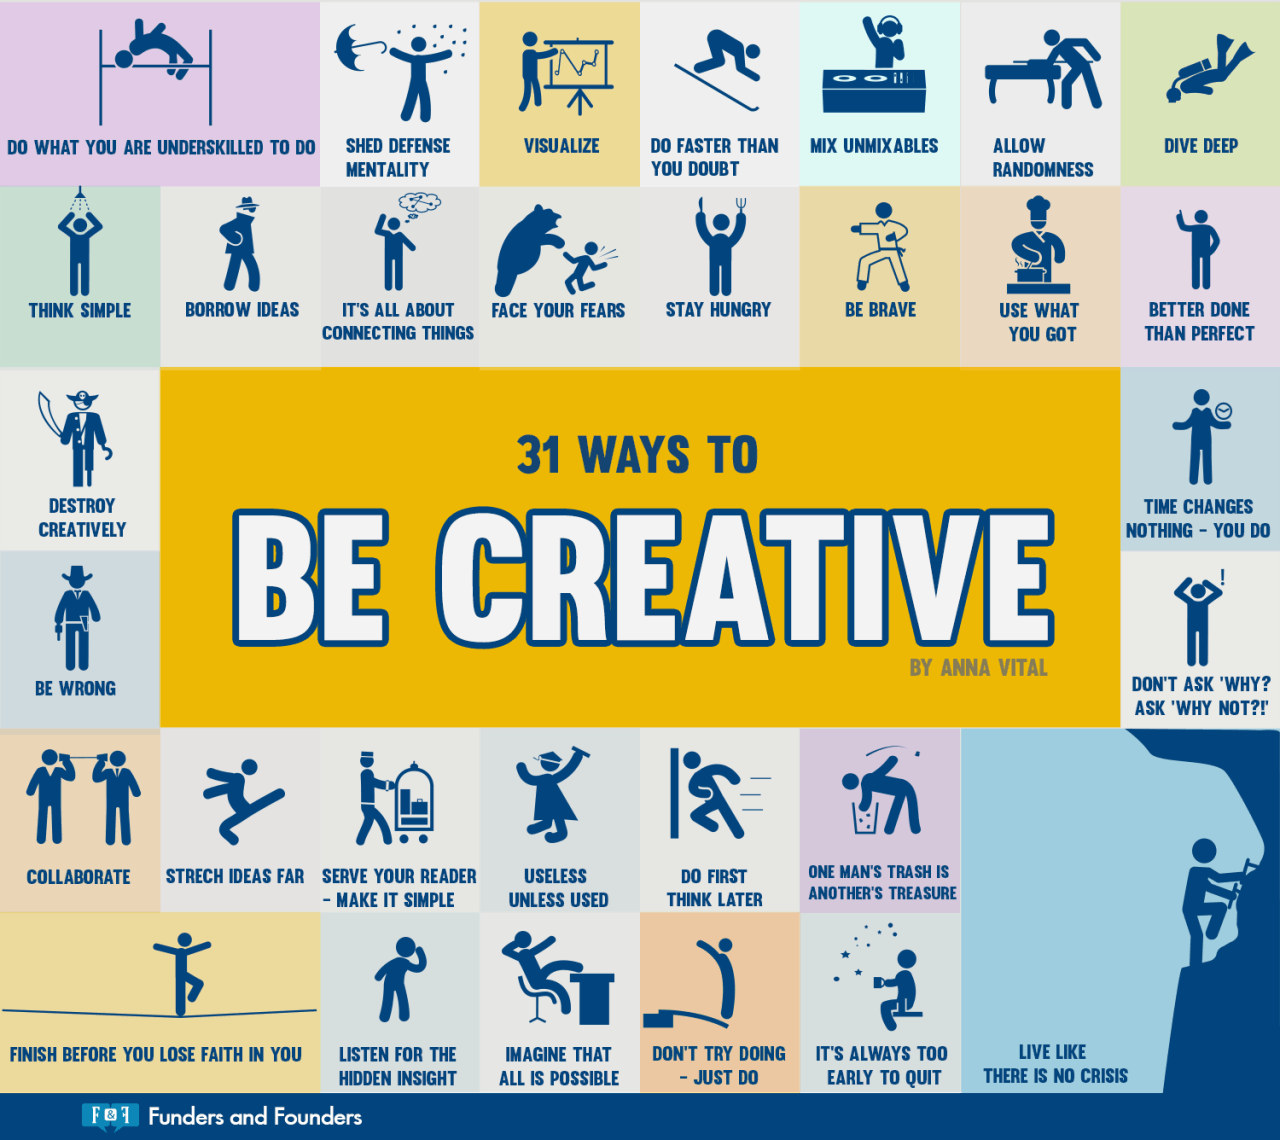 How To Be Creative 31 Ways Infographic